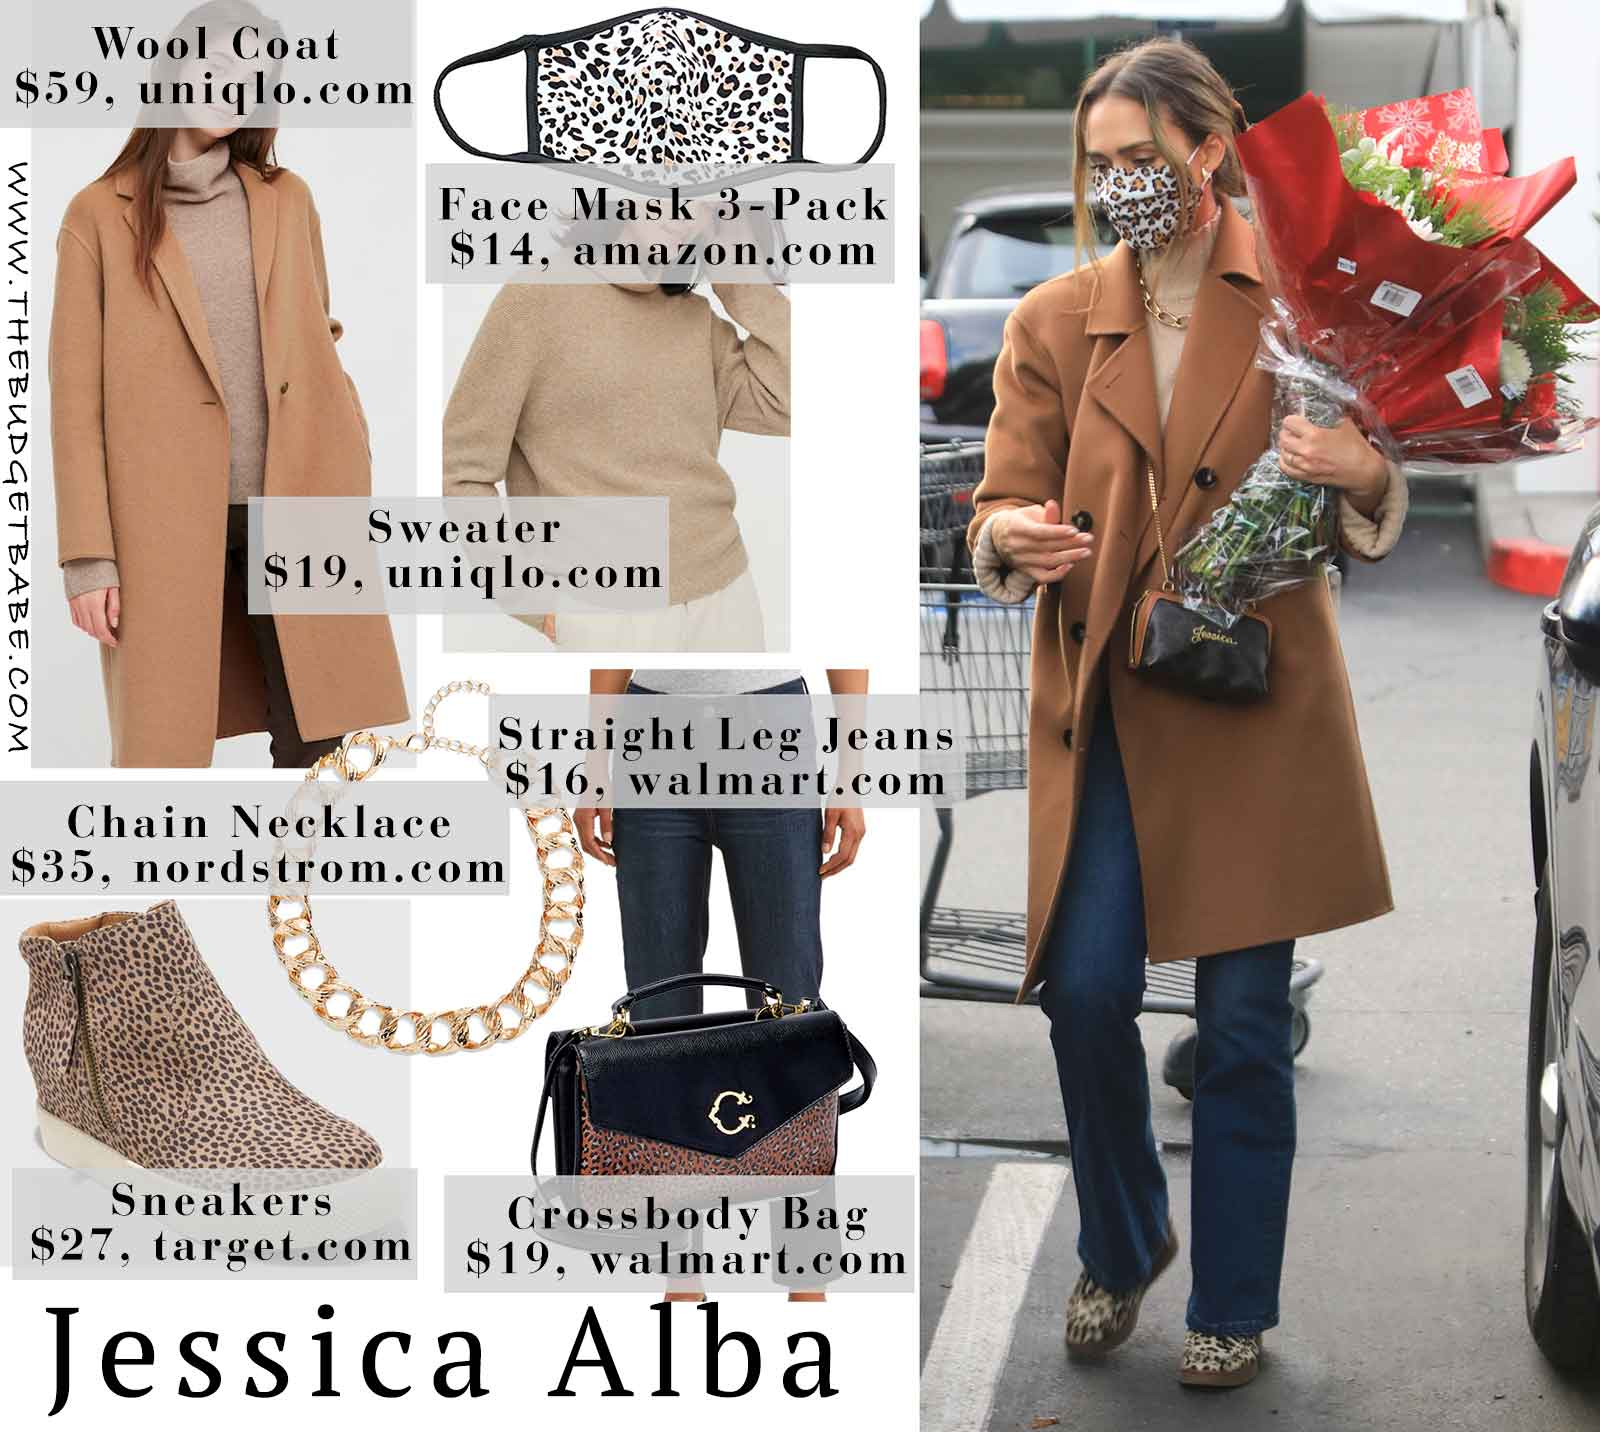 Jessica Alba's leopard face mask, camel coat and straight leg jeans look for less